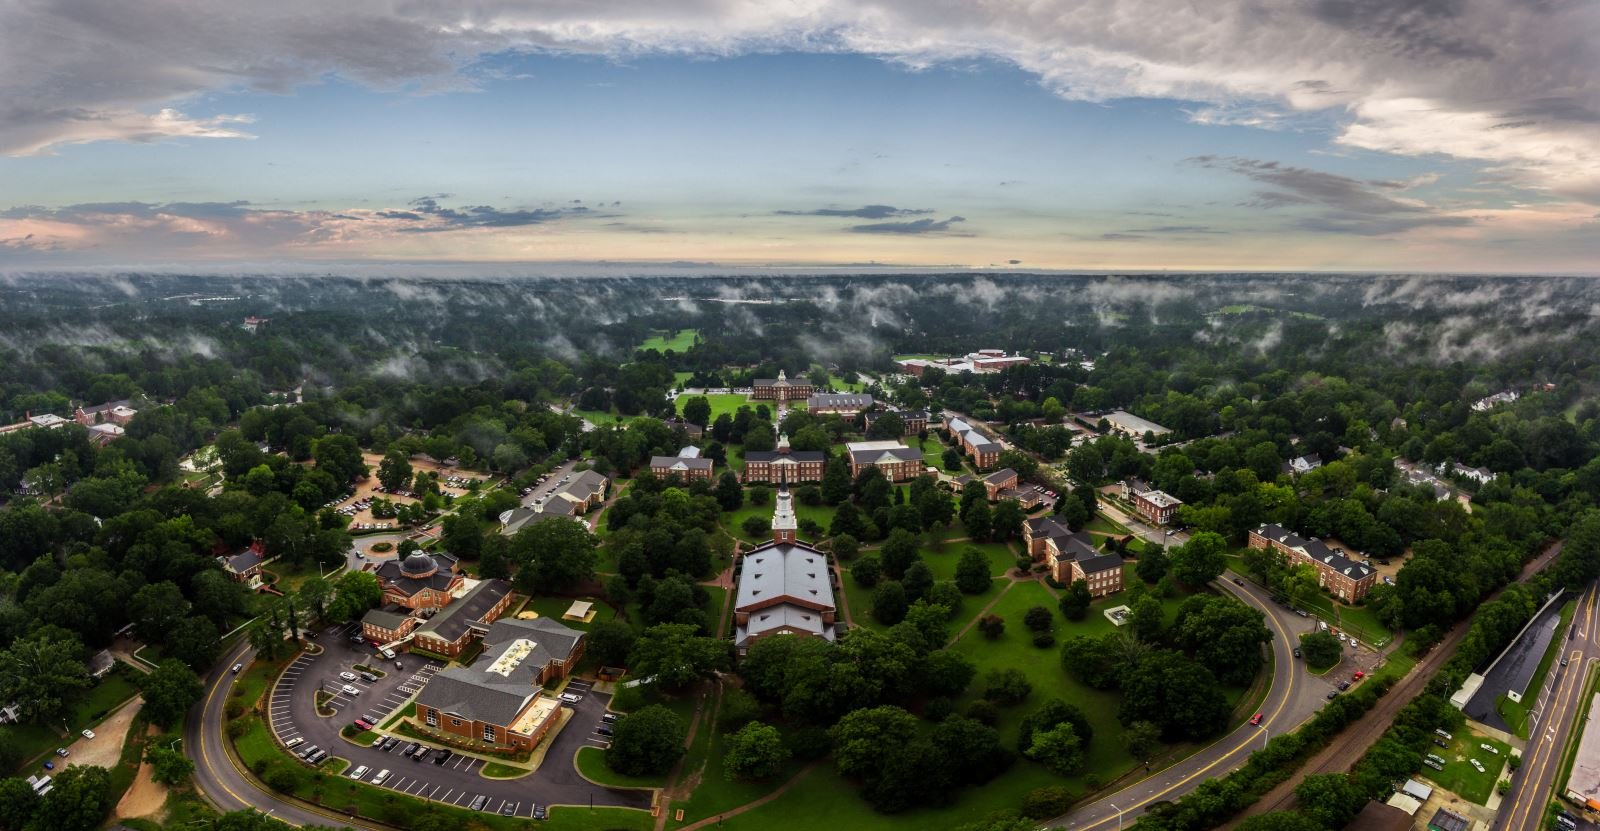 Drone picture of campus